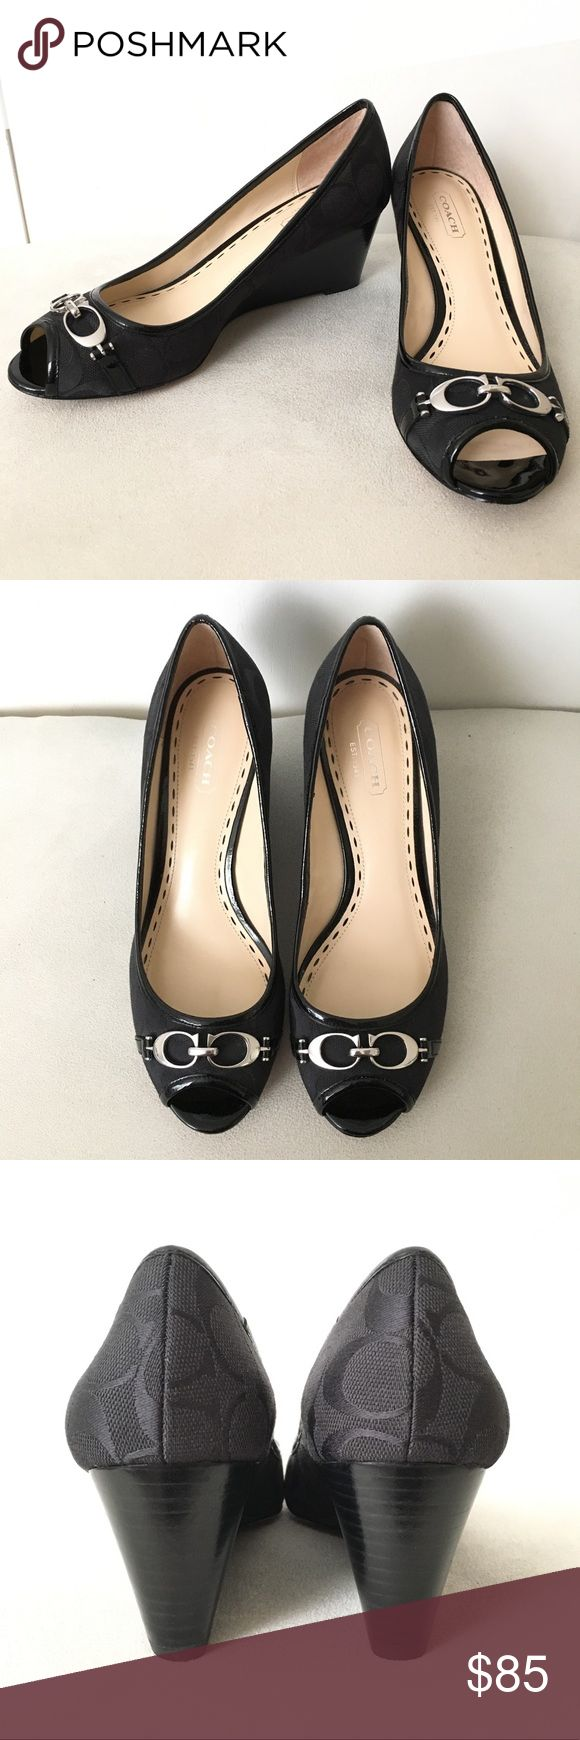 """Coach Signature Peep Toe Wedges These Coach black peep toe wedges are in excellent used condition. Have only been worn a few times. Patent & fabric material. Signature Coach logo throughout. 2 1/2"""" wedged heel. Size 7. So cute & elegant! Coach Shoes Wedges"""